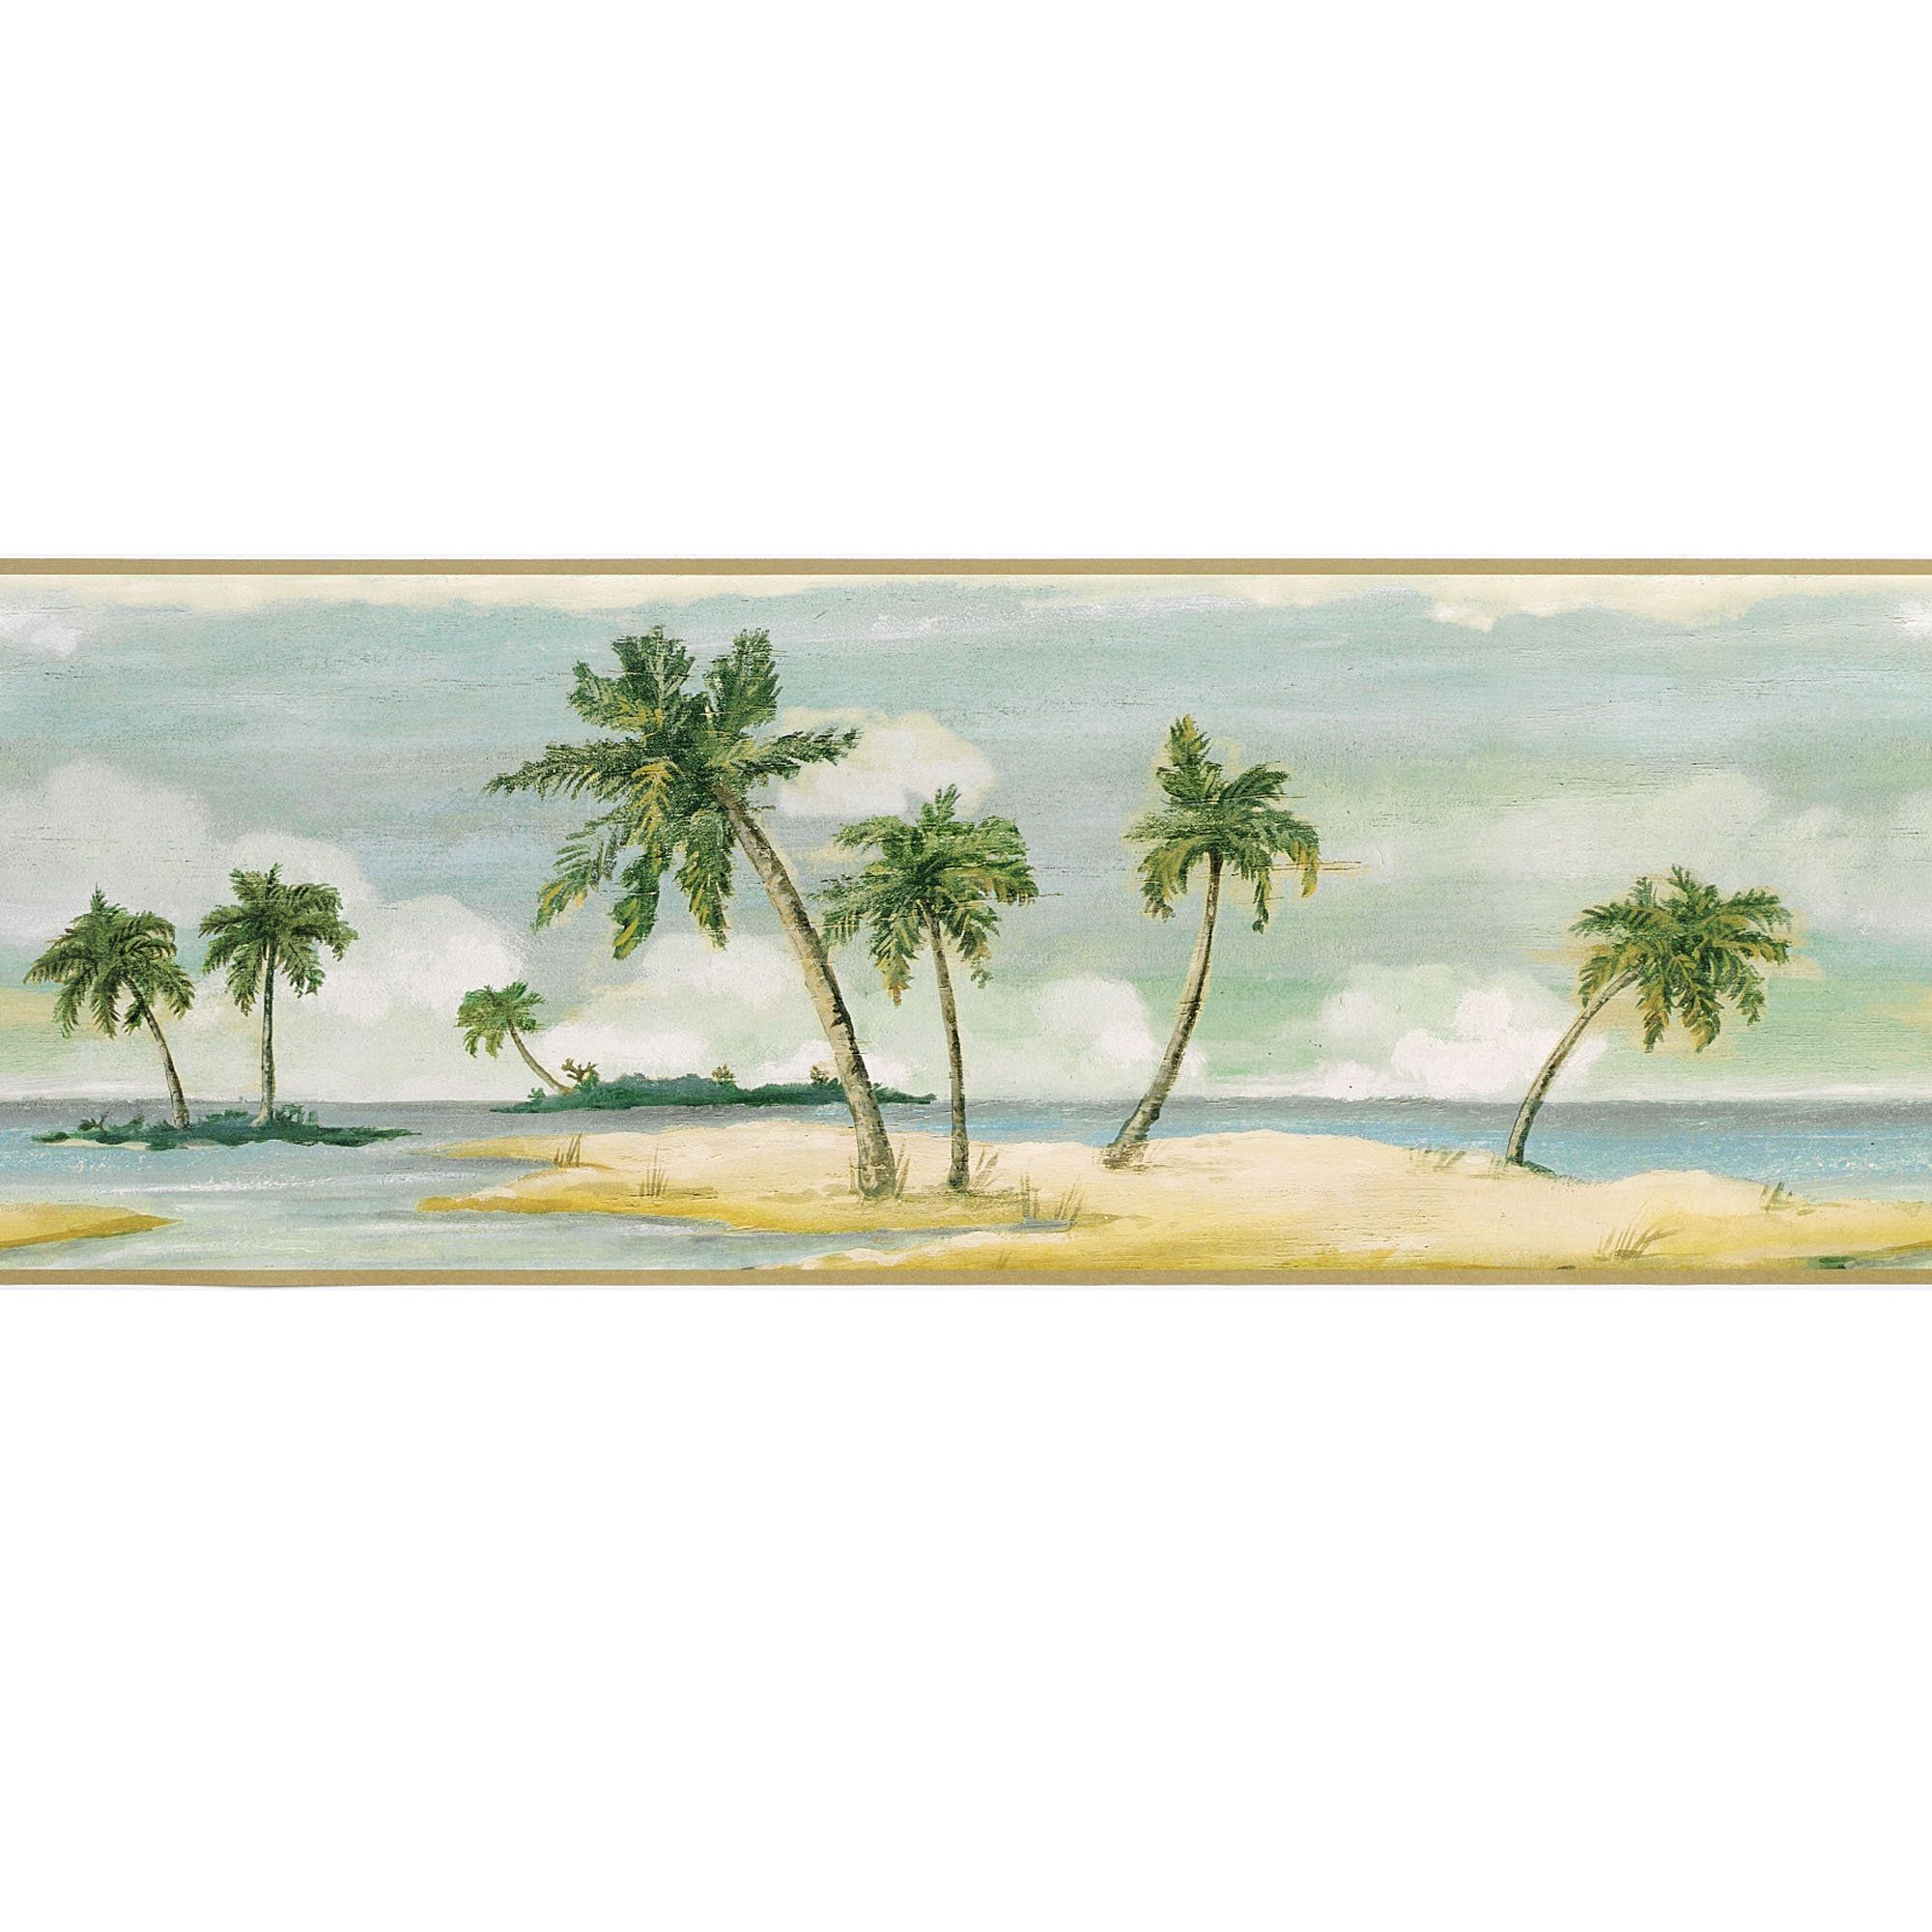 Home Tranquil Islands Palm Tree Wallpaper Border Le P Cl